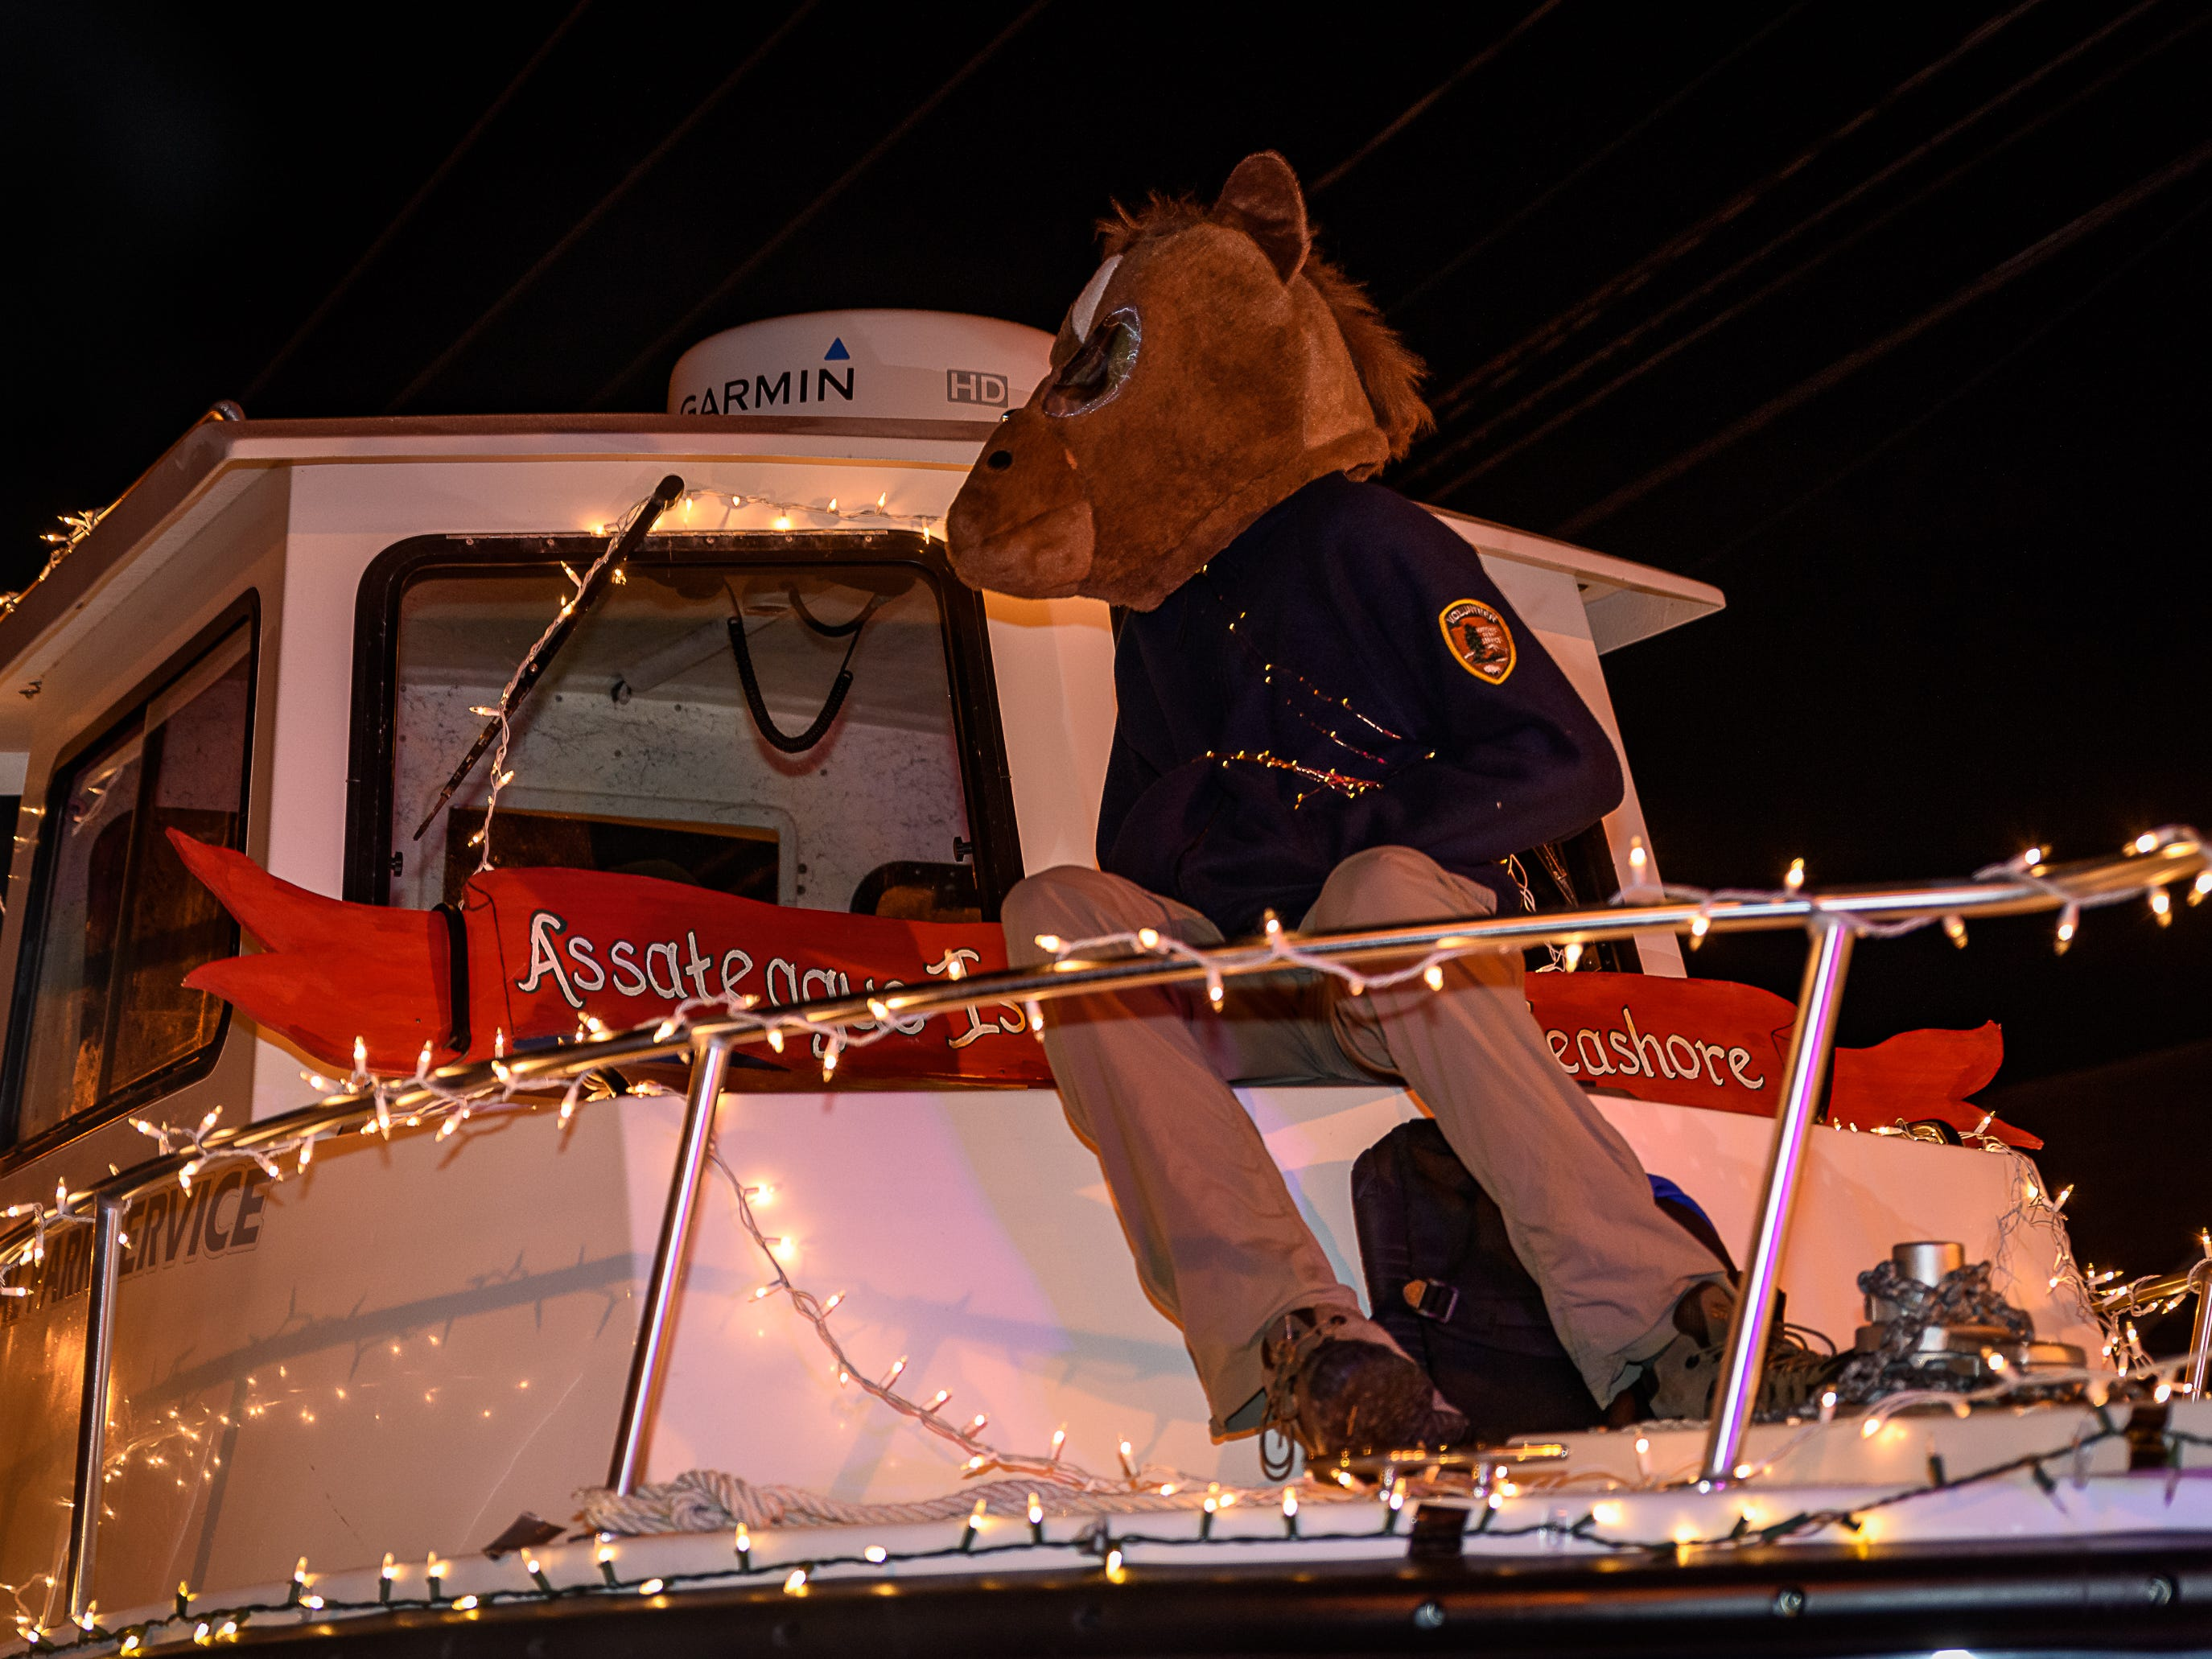 The mascot of the Assateague Island National Seashore rides atop their float in the Chincoteague Christmas parade on Saturday.